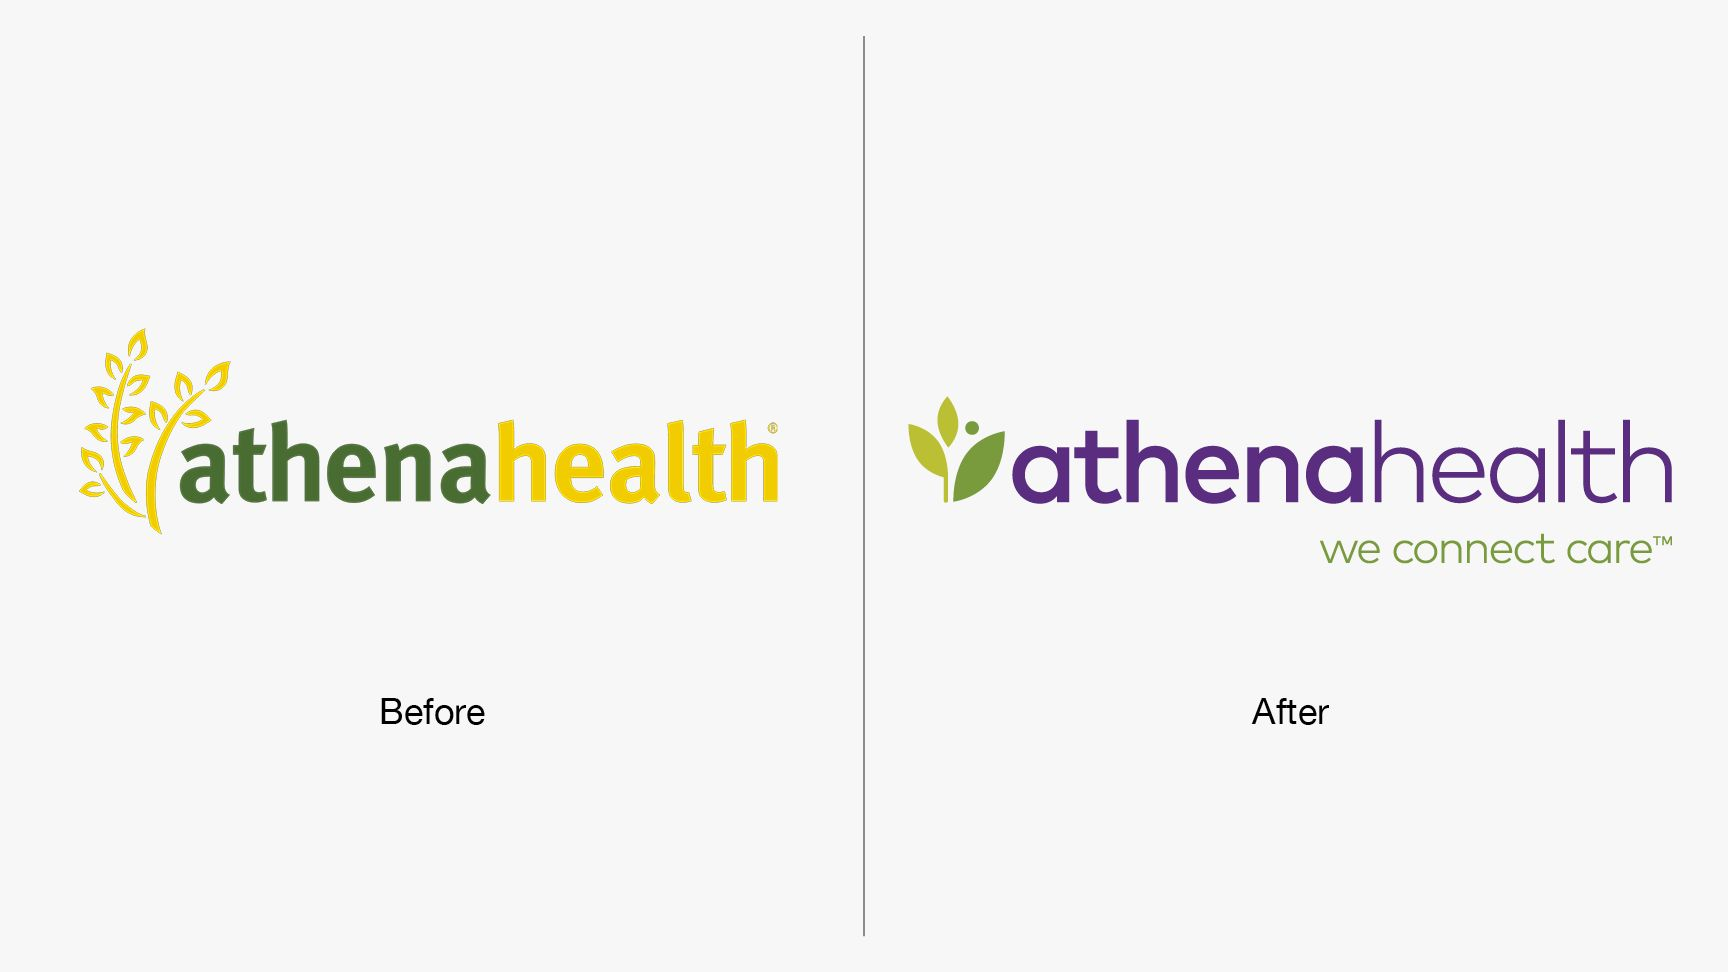 Tanksite Athenahealth B1 Cloud Based Services Medical Practice Marketing Collateral